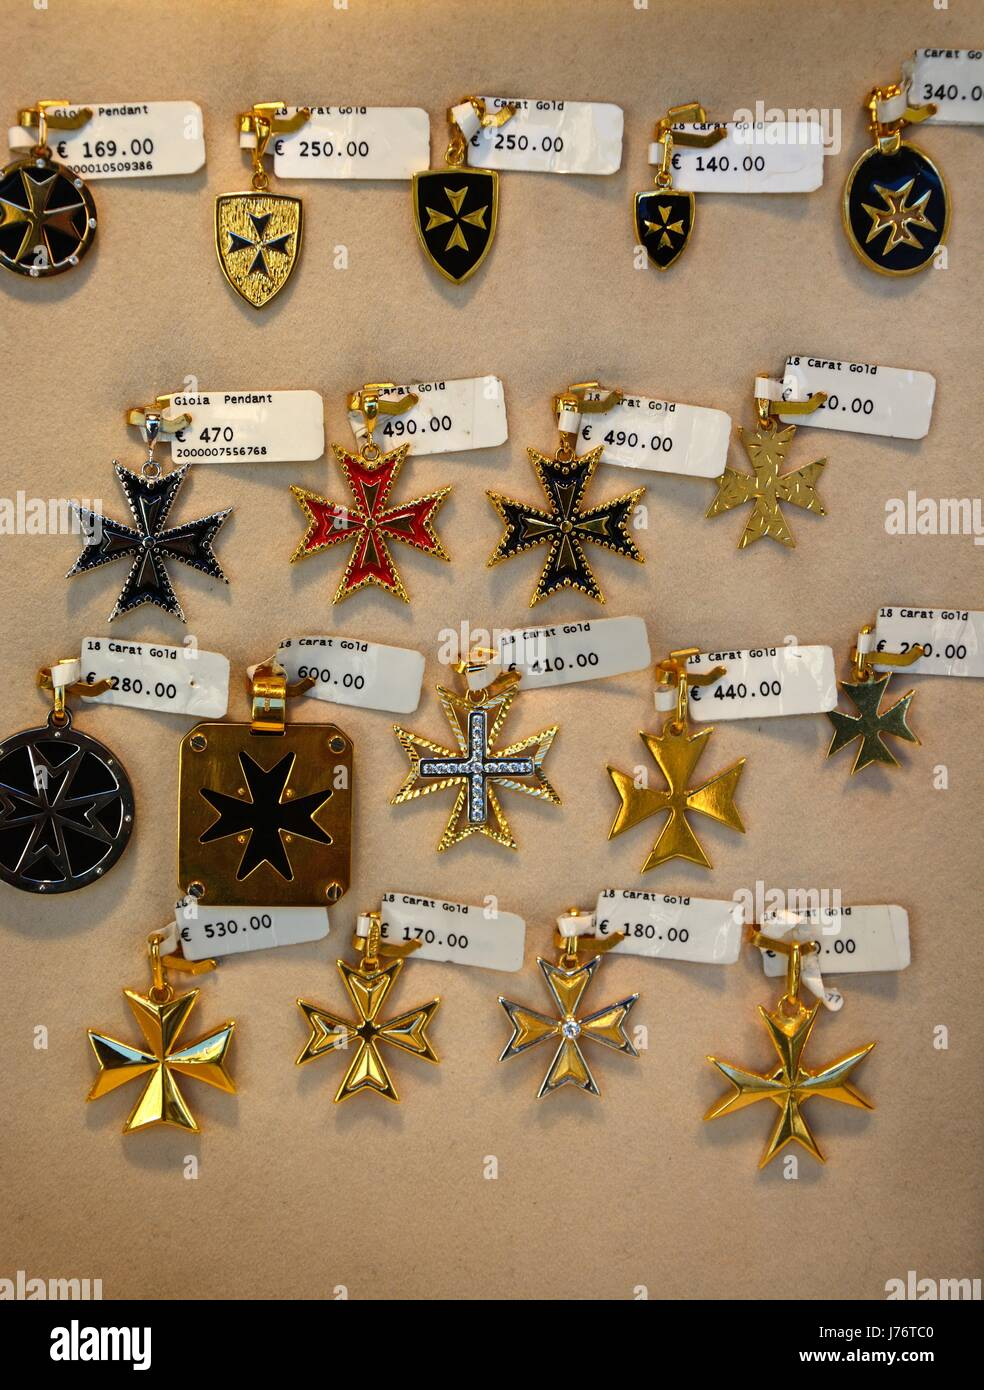 Gold maltese cross pendants for sale in a shop along republic street gold maltese cross pendants for sale in a shop along republic street aka triq ir repubblika valletta malta europe mozeypictures Image collections